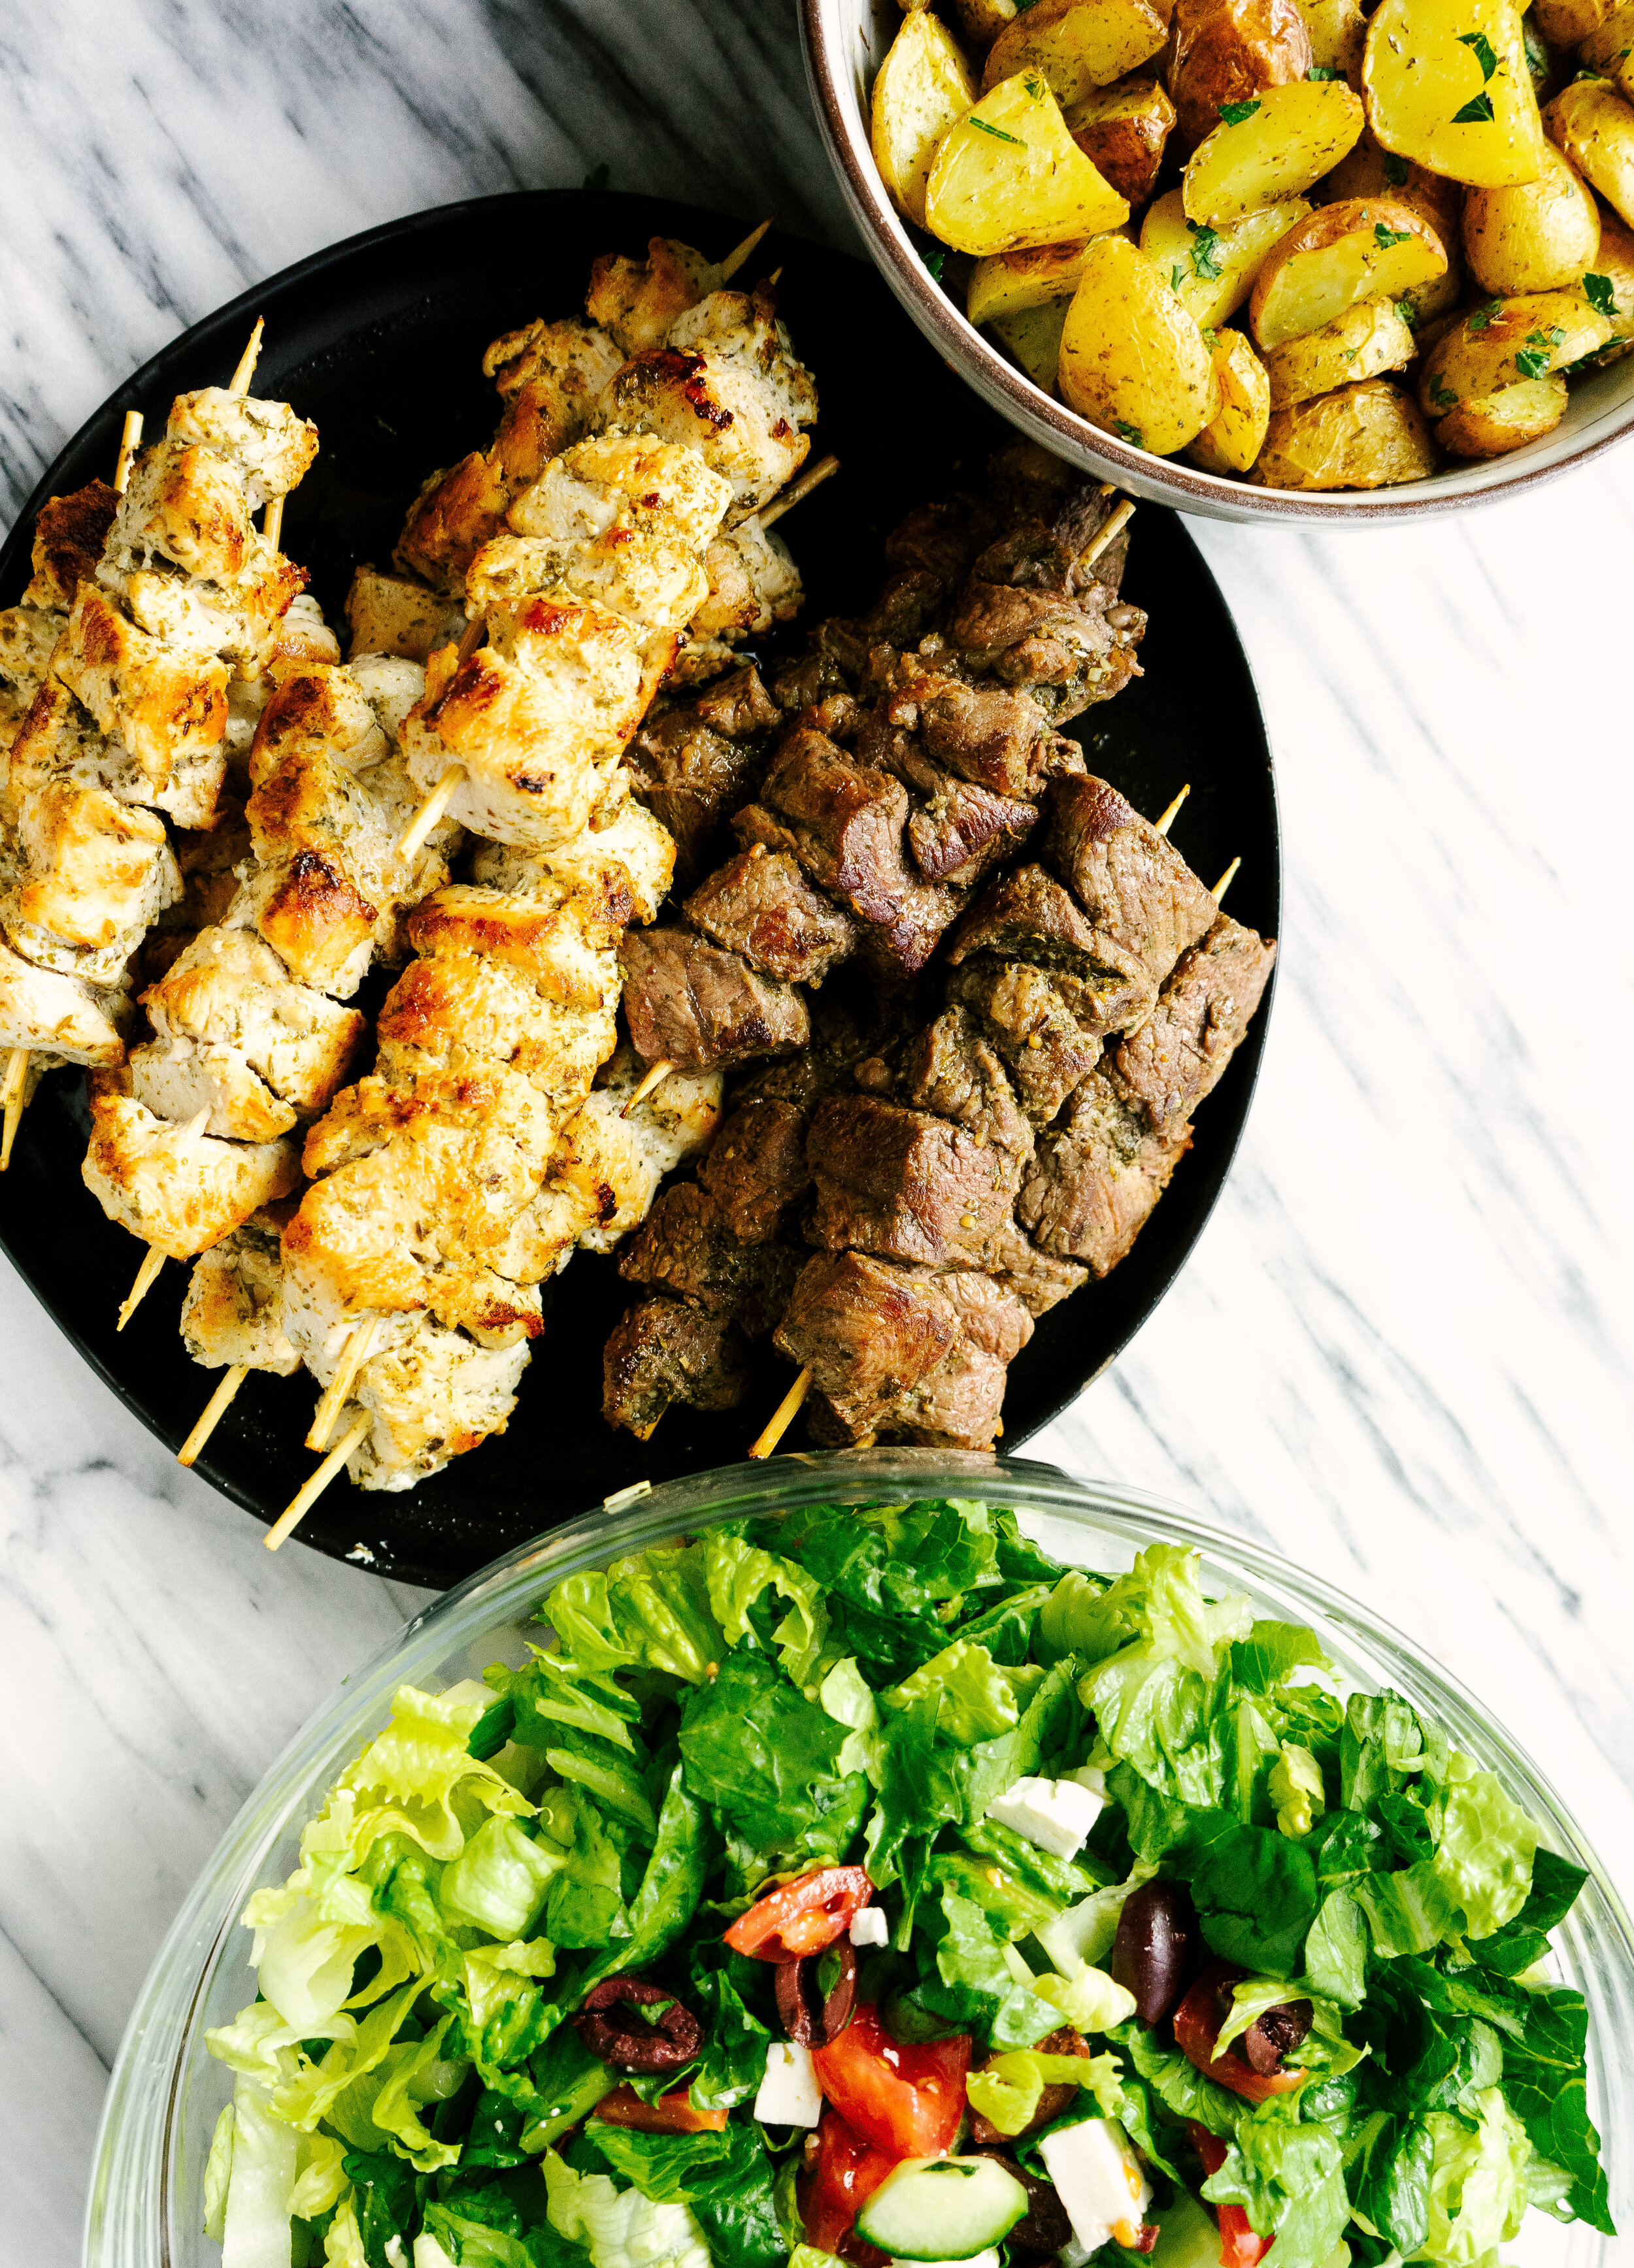 Throw an authentic Greek dinner party for a small group with this fully planned Greek menu. This includes easy to follow recipes and a full shopping list. Make throwing a dinner party easy with this helpful guide.